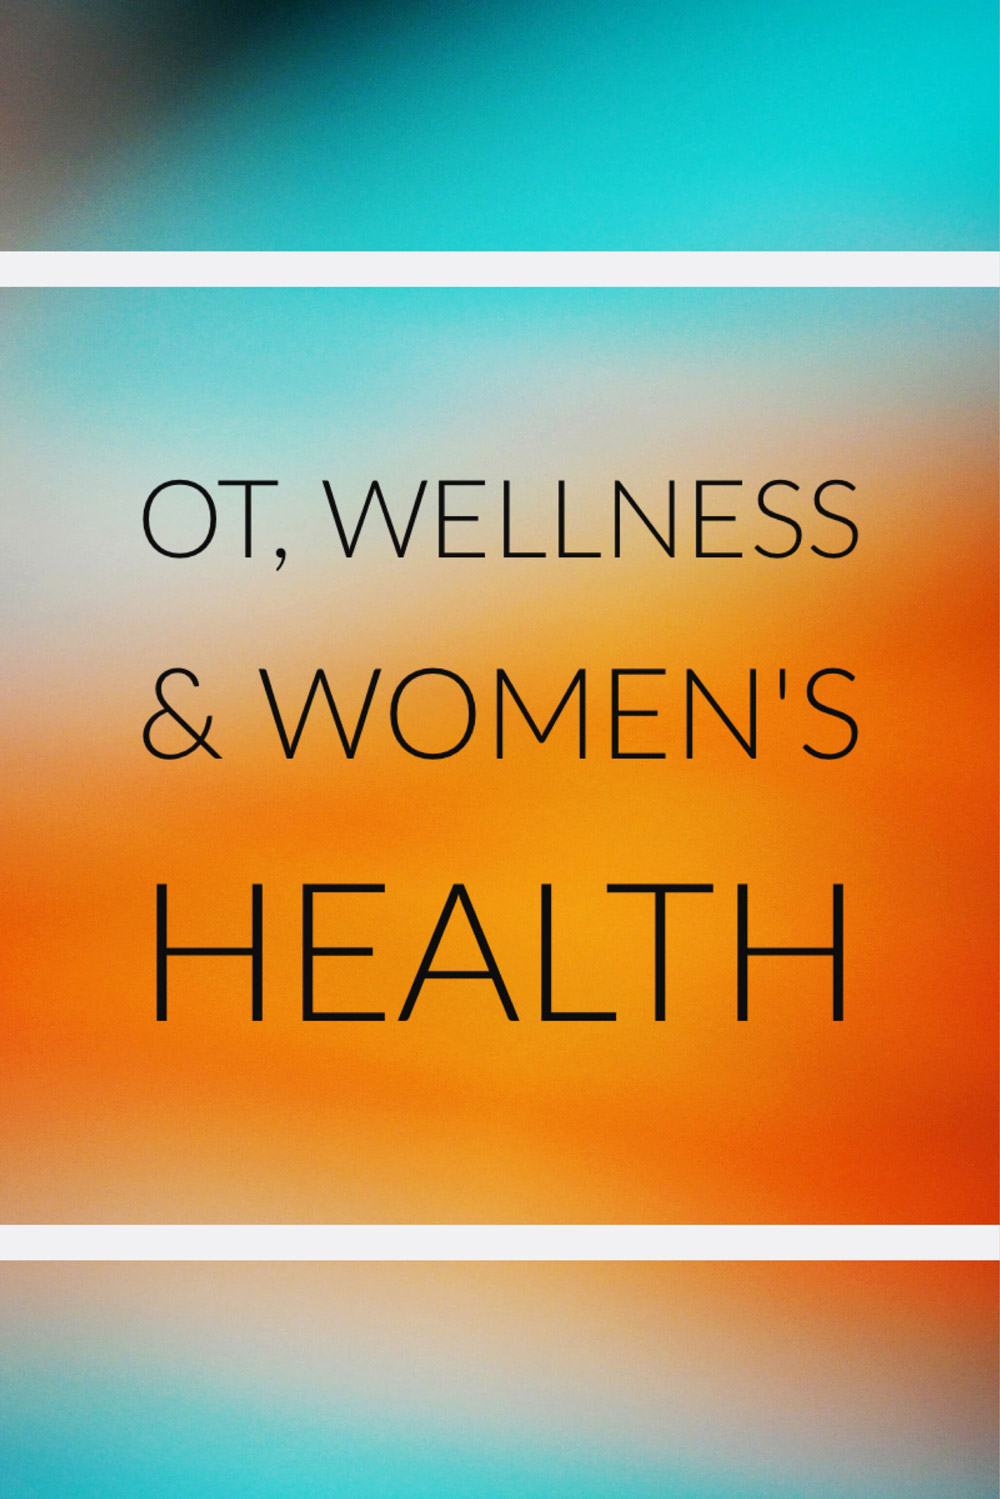 An interview with occupational therapist, Melissa LaPointe, about how she integrates occupational therapy, wellness and women's health to provide care for families in her area.